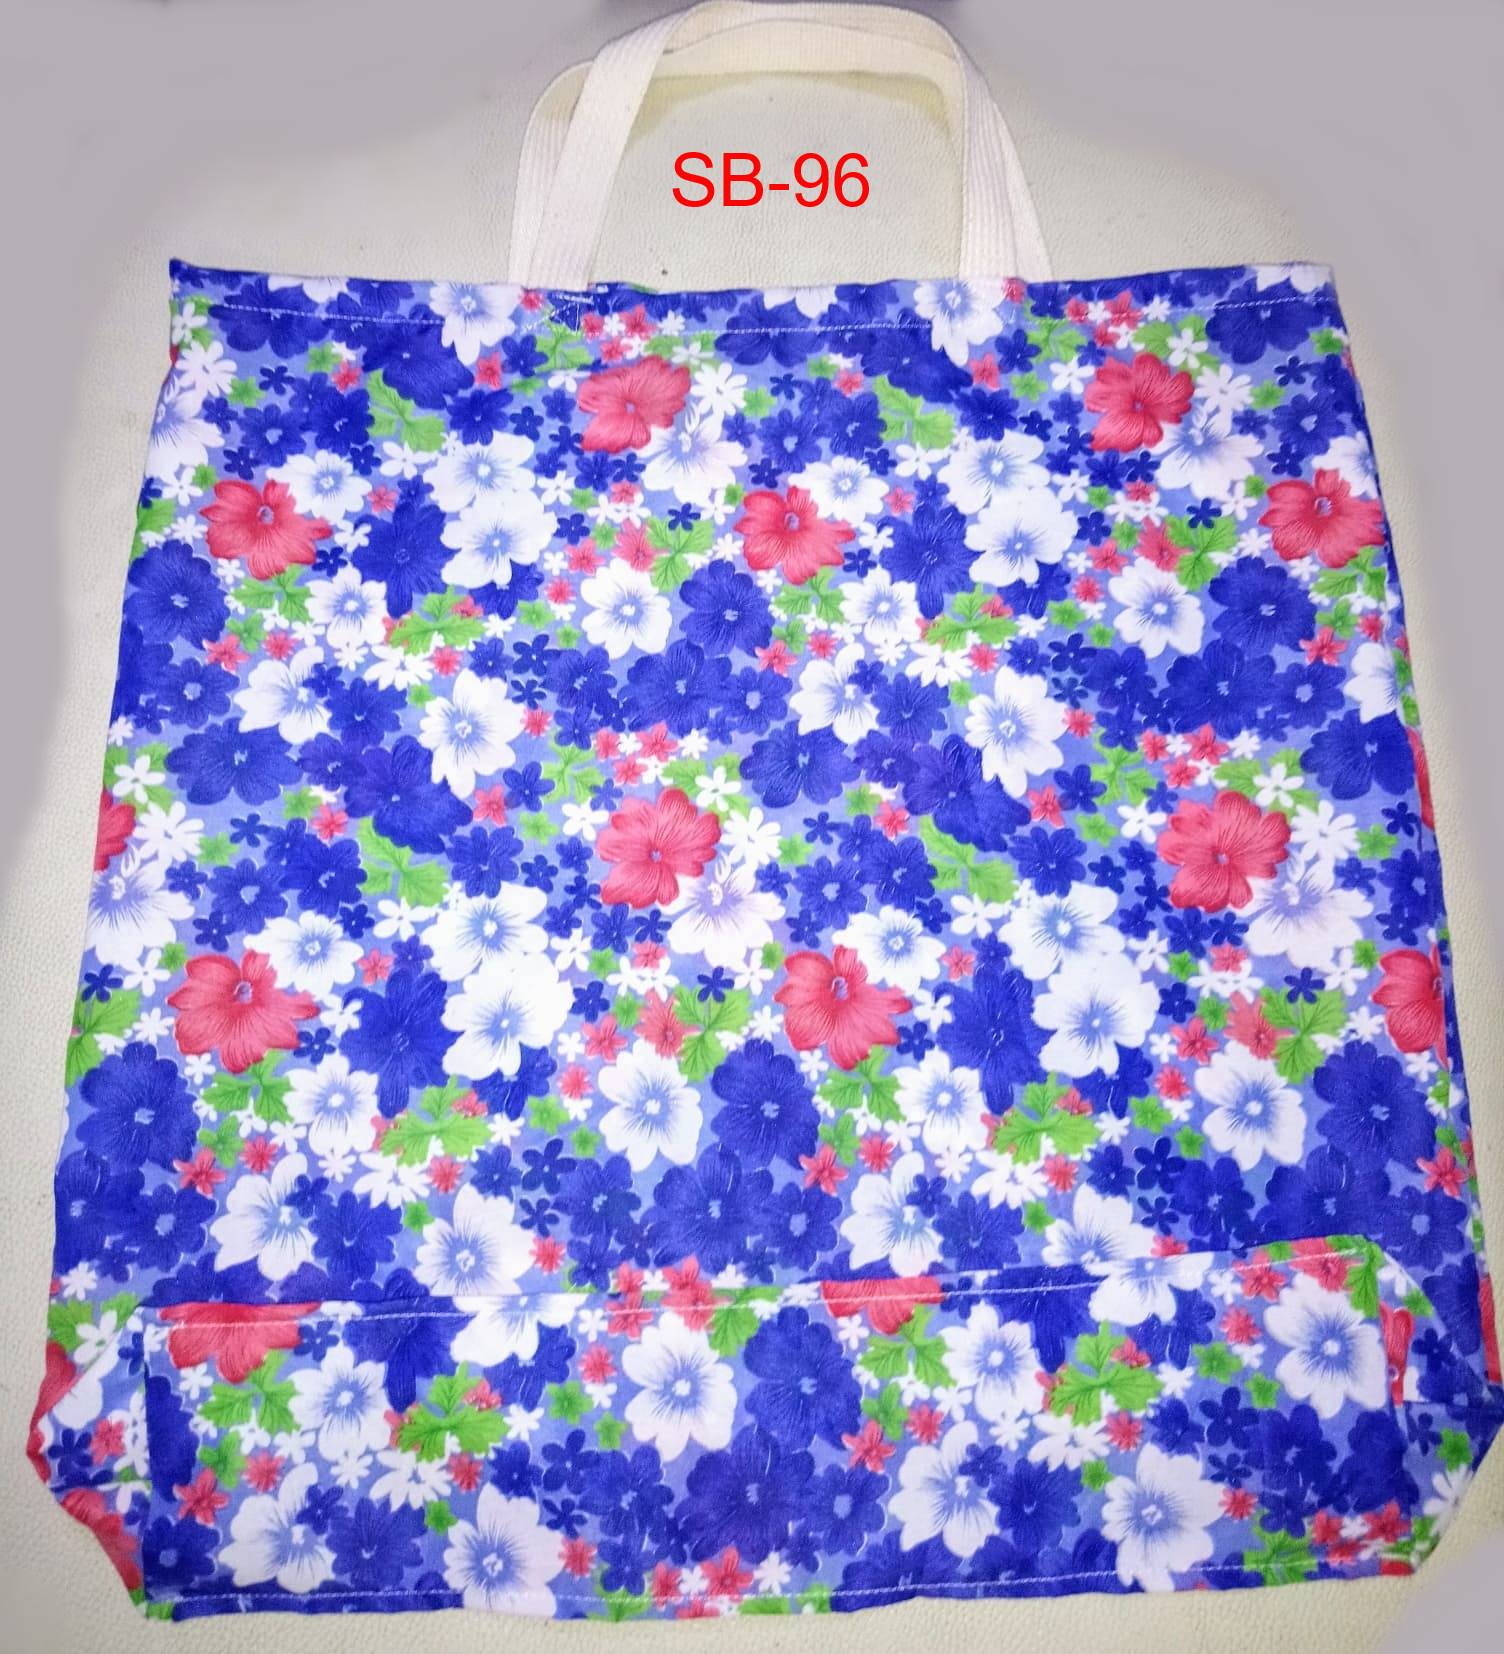 Satin Shopping Bag